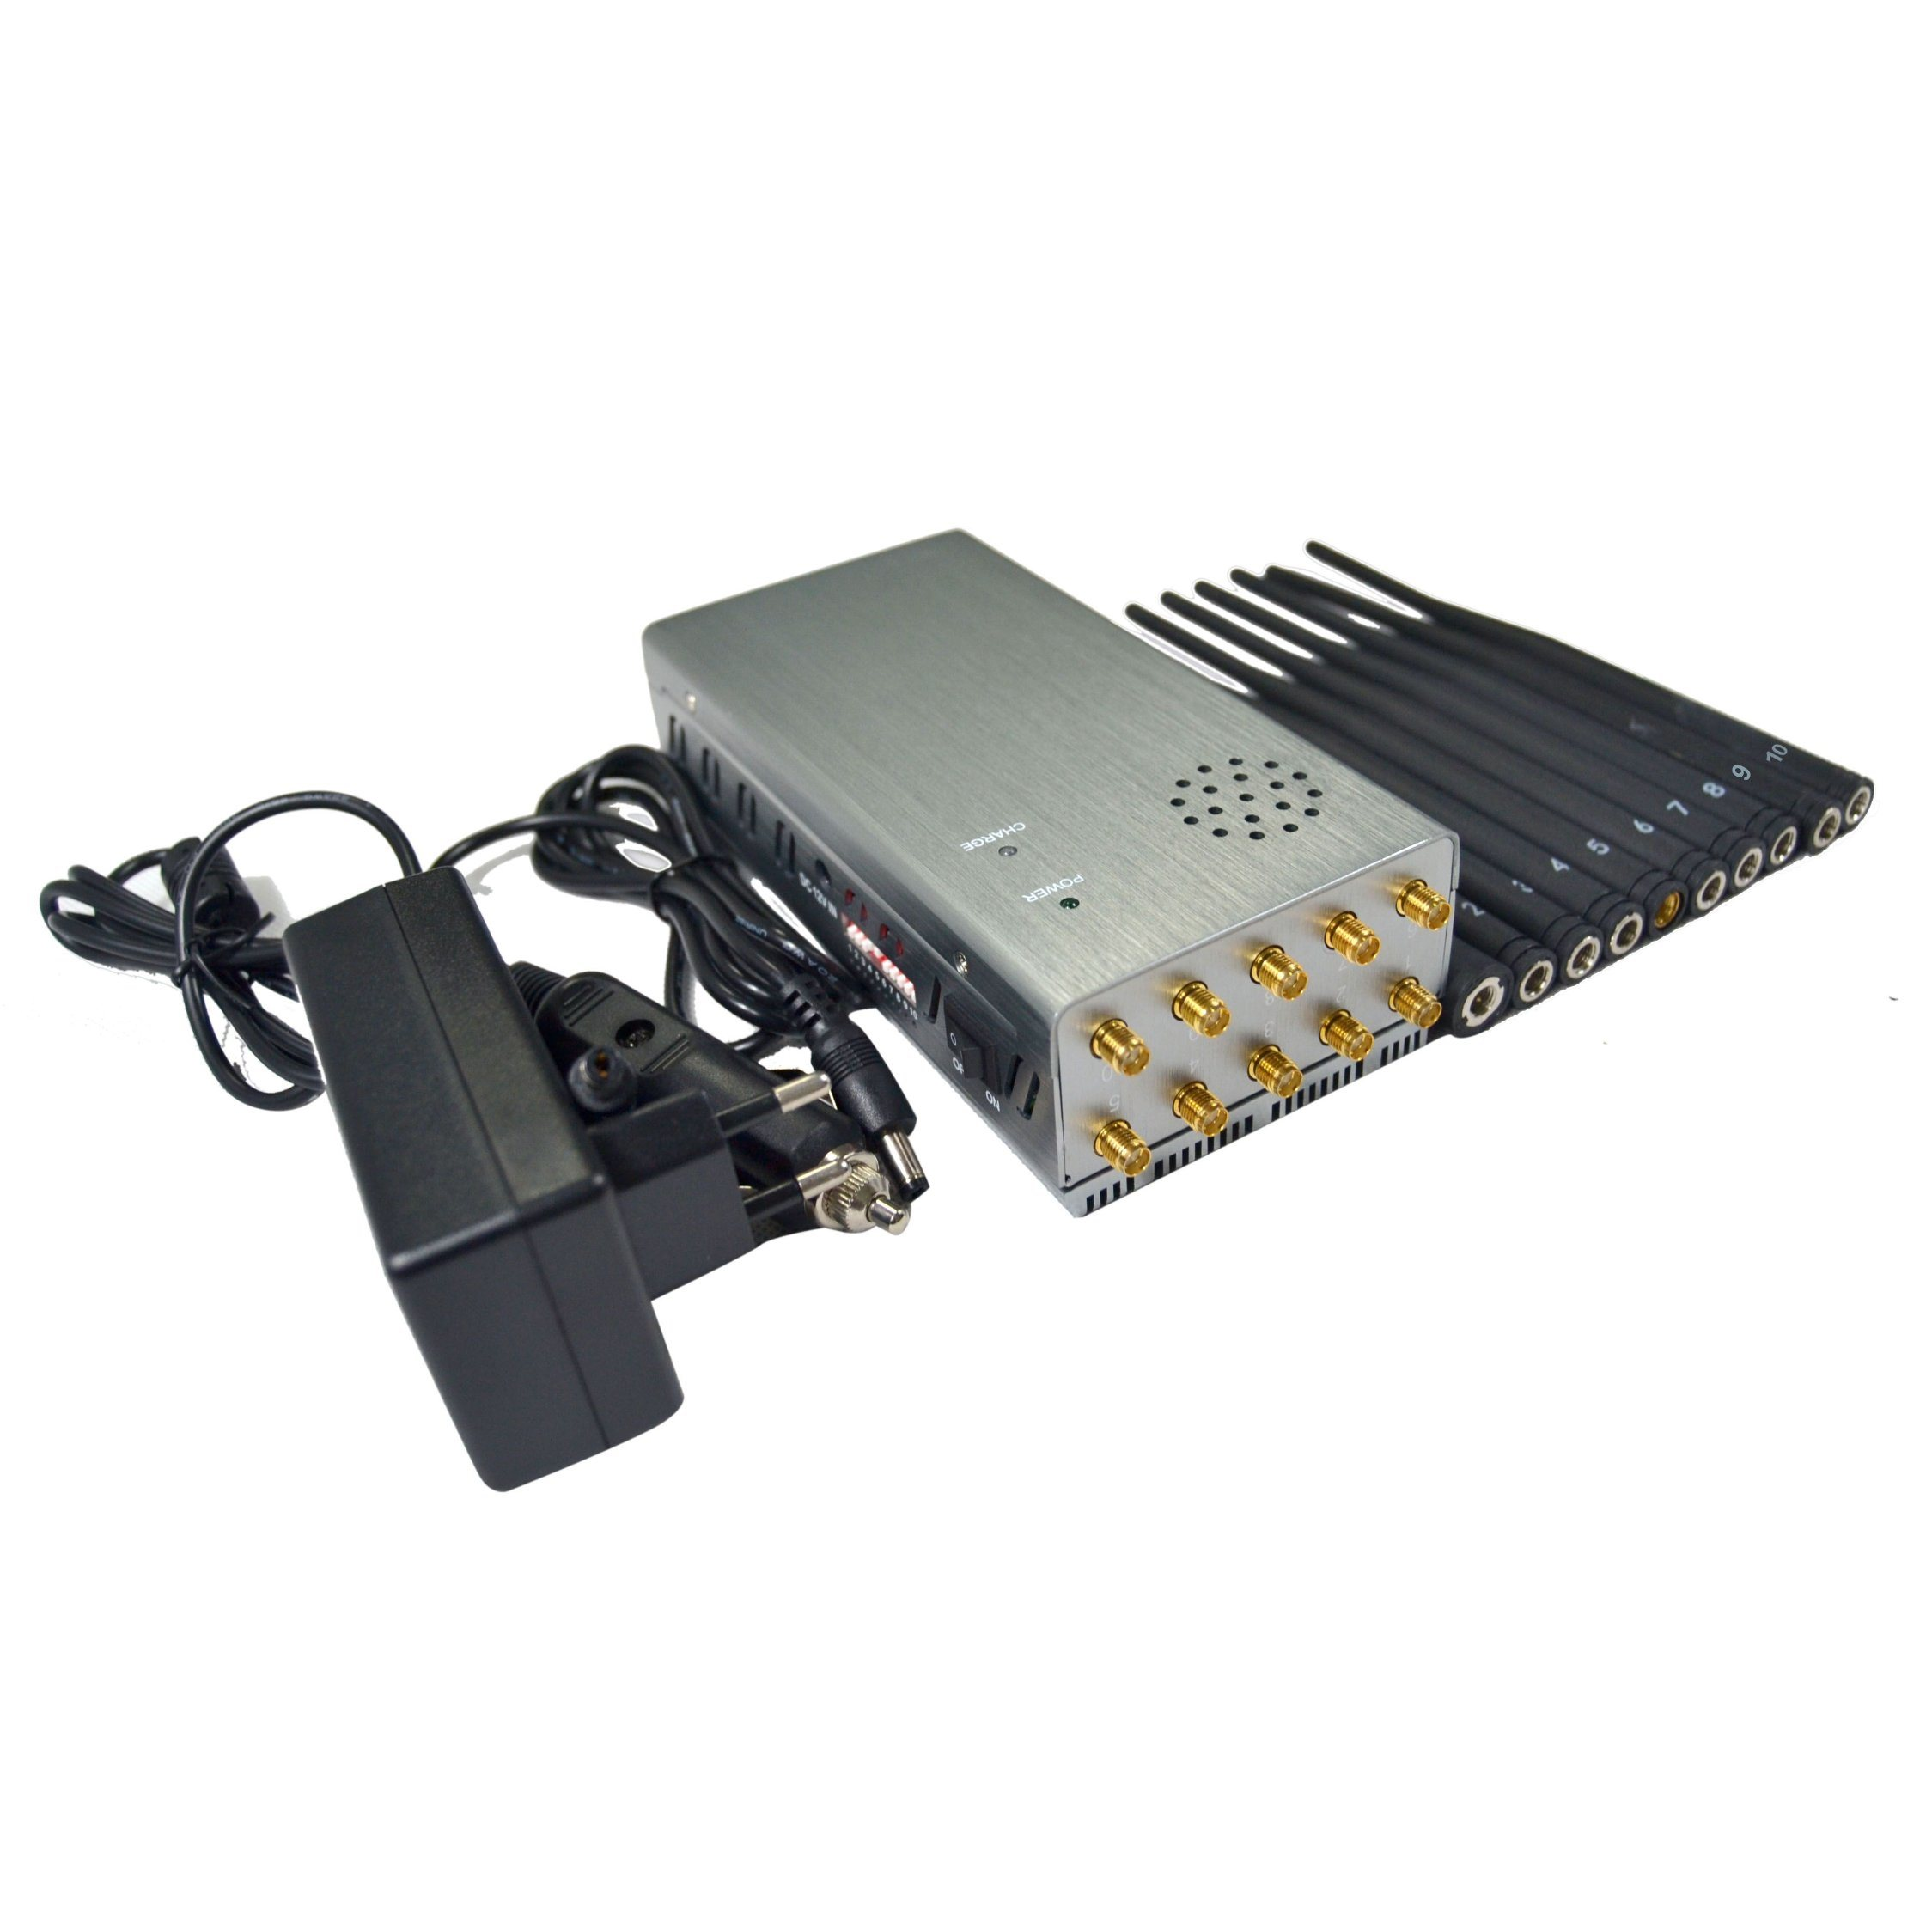 phone jammer lelong my account , China Full Band Pocket Jammer with 8000mA Attery Long Working Time Satify Your Outdoor Working Requirements - China Mobile Phone Jammer, Full Band Signal Blockers